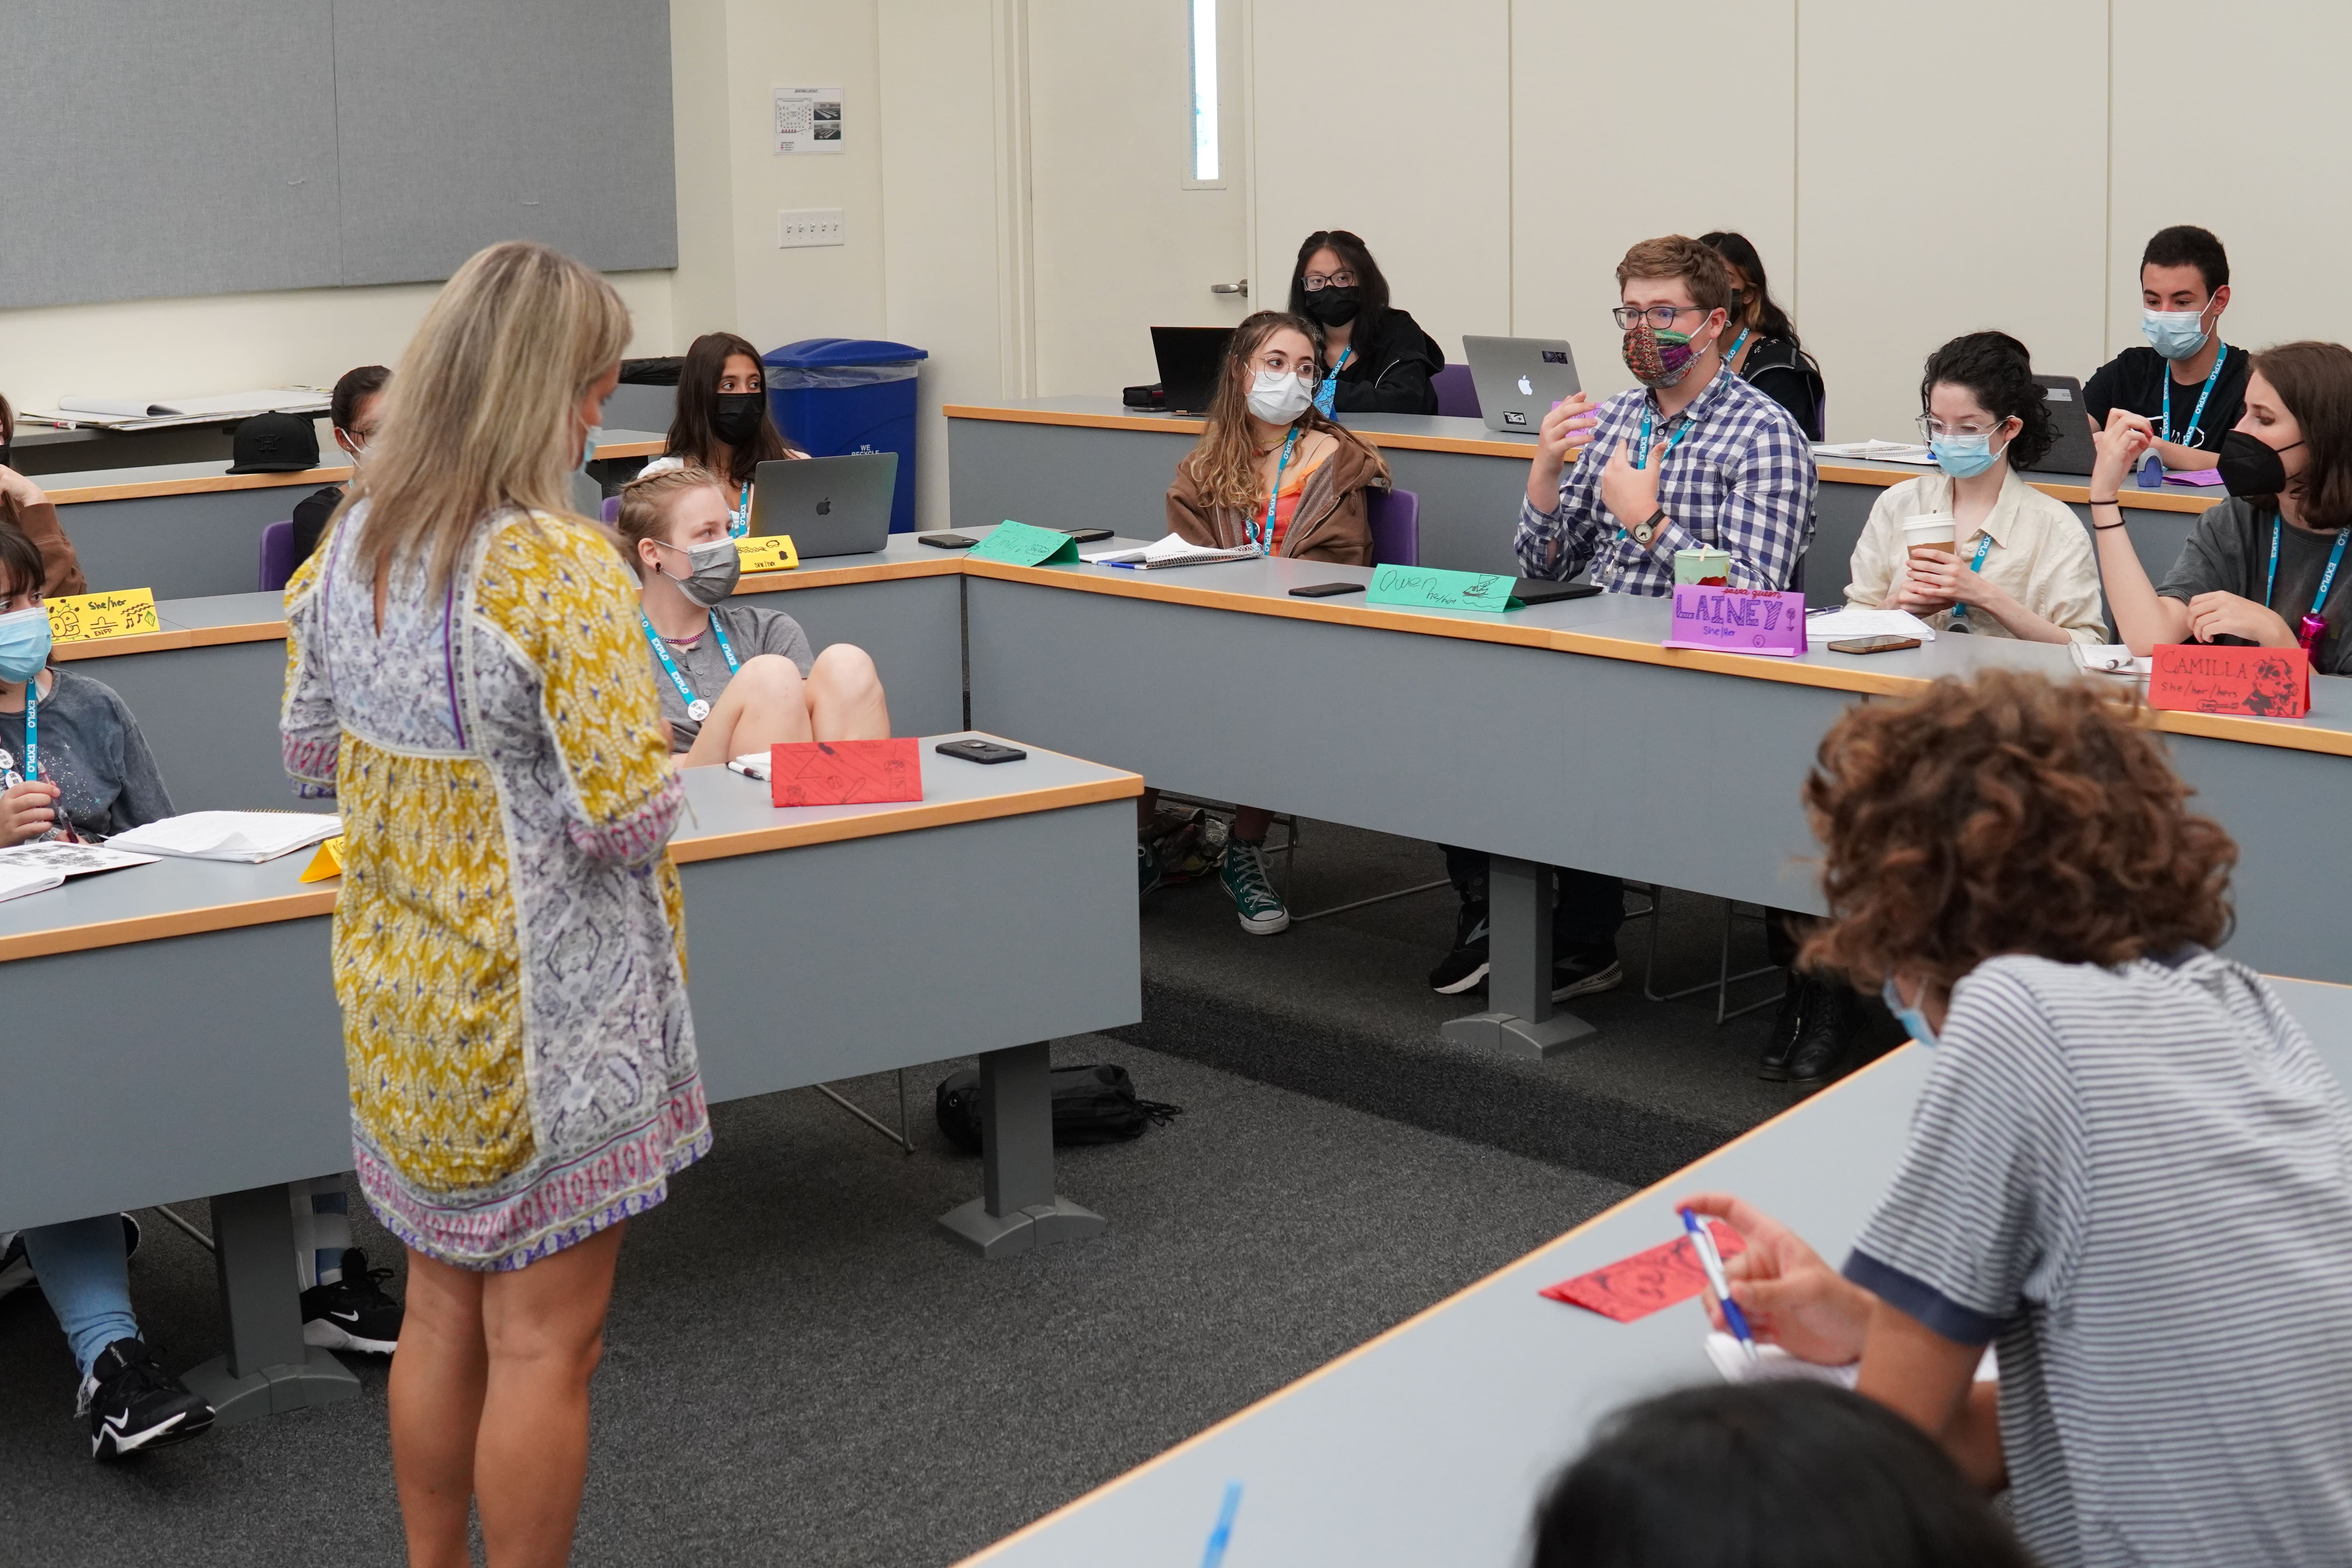 A student speaks from their seat in a lecture hall as students and Lead Instructor Lori turn to listen.